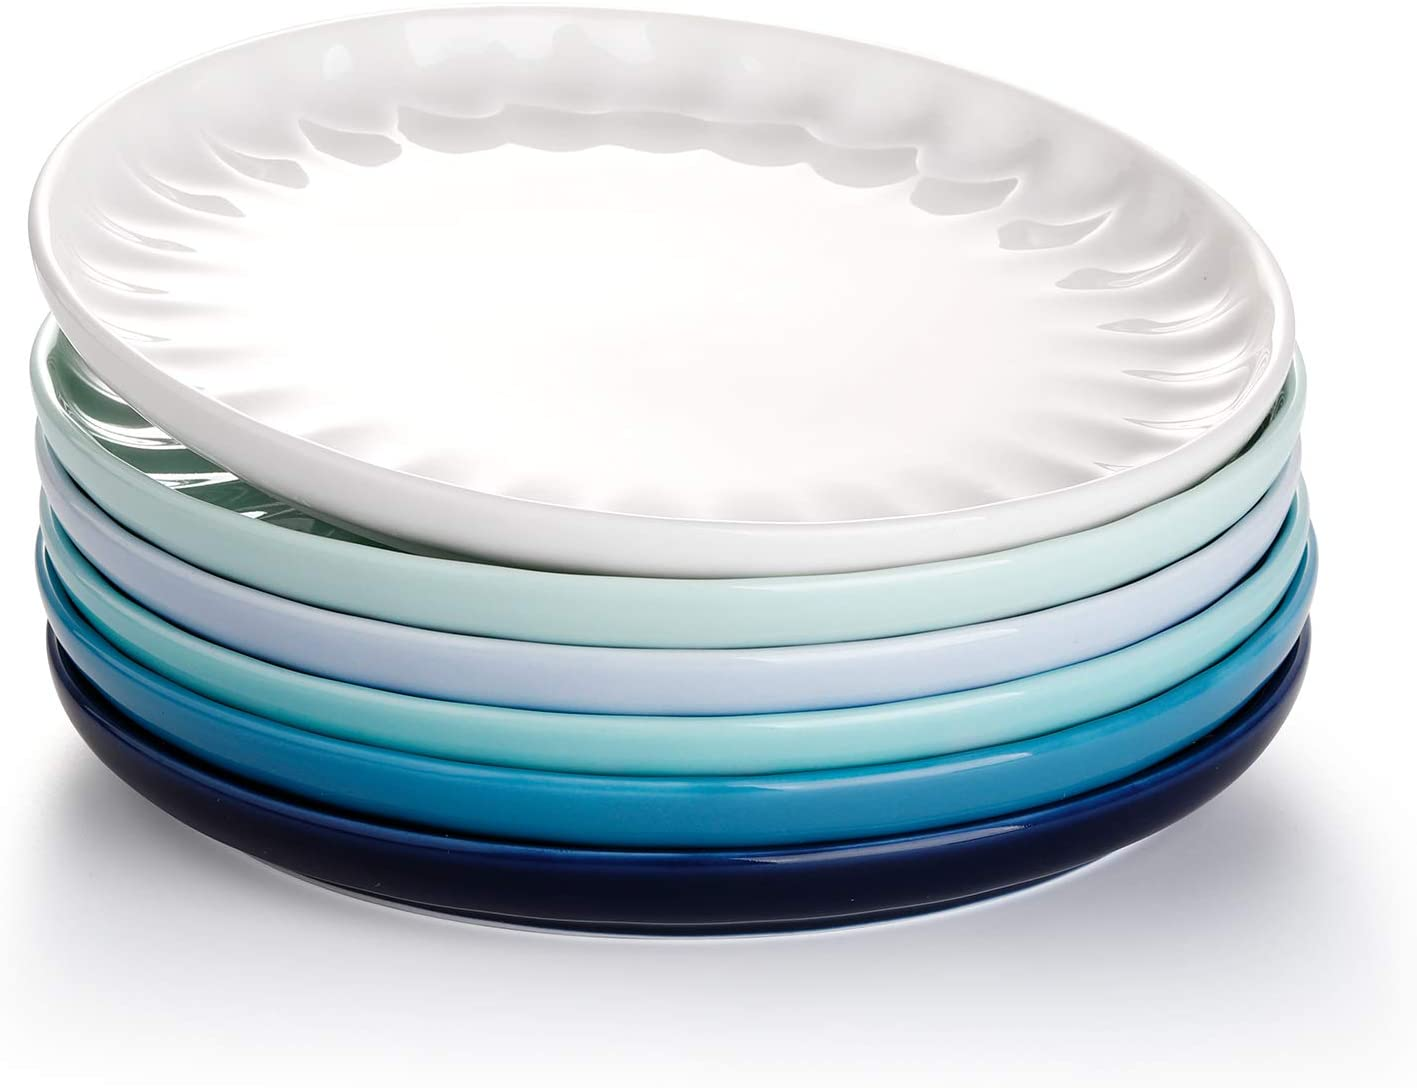 Sweese 161.003 Porcelain Inner Fluted Dessert Salad Plates - 7.4 Inch - Set of 6, Cool Assorted Colors